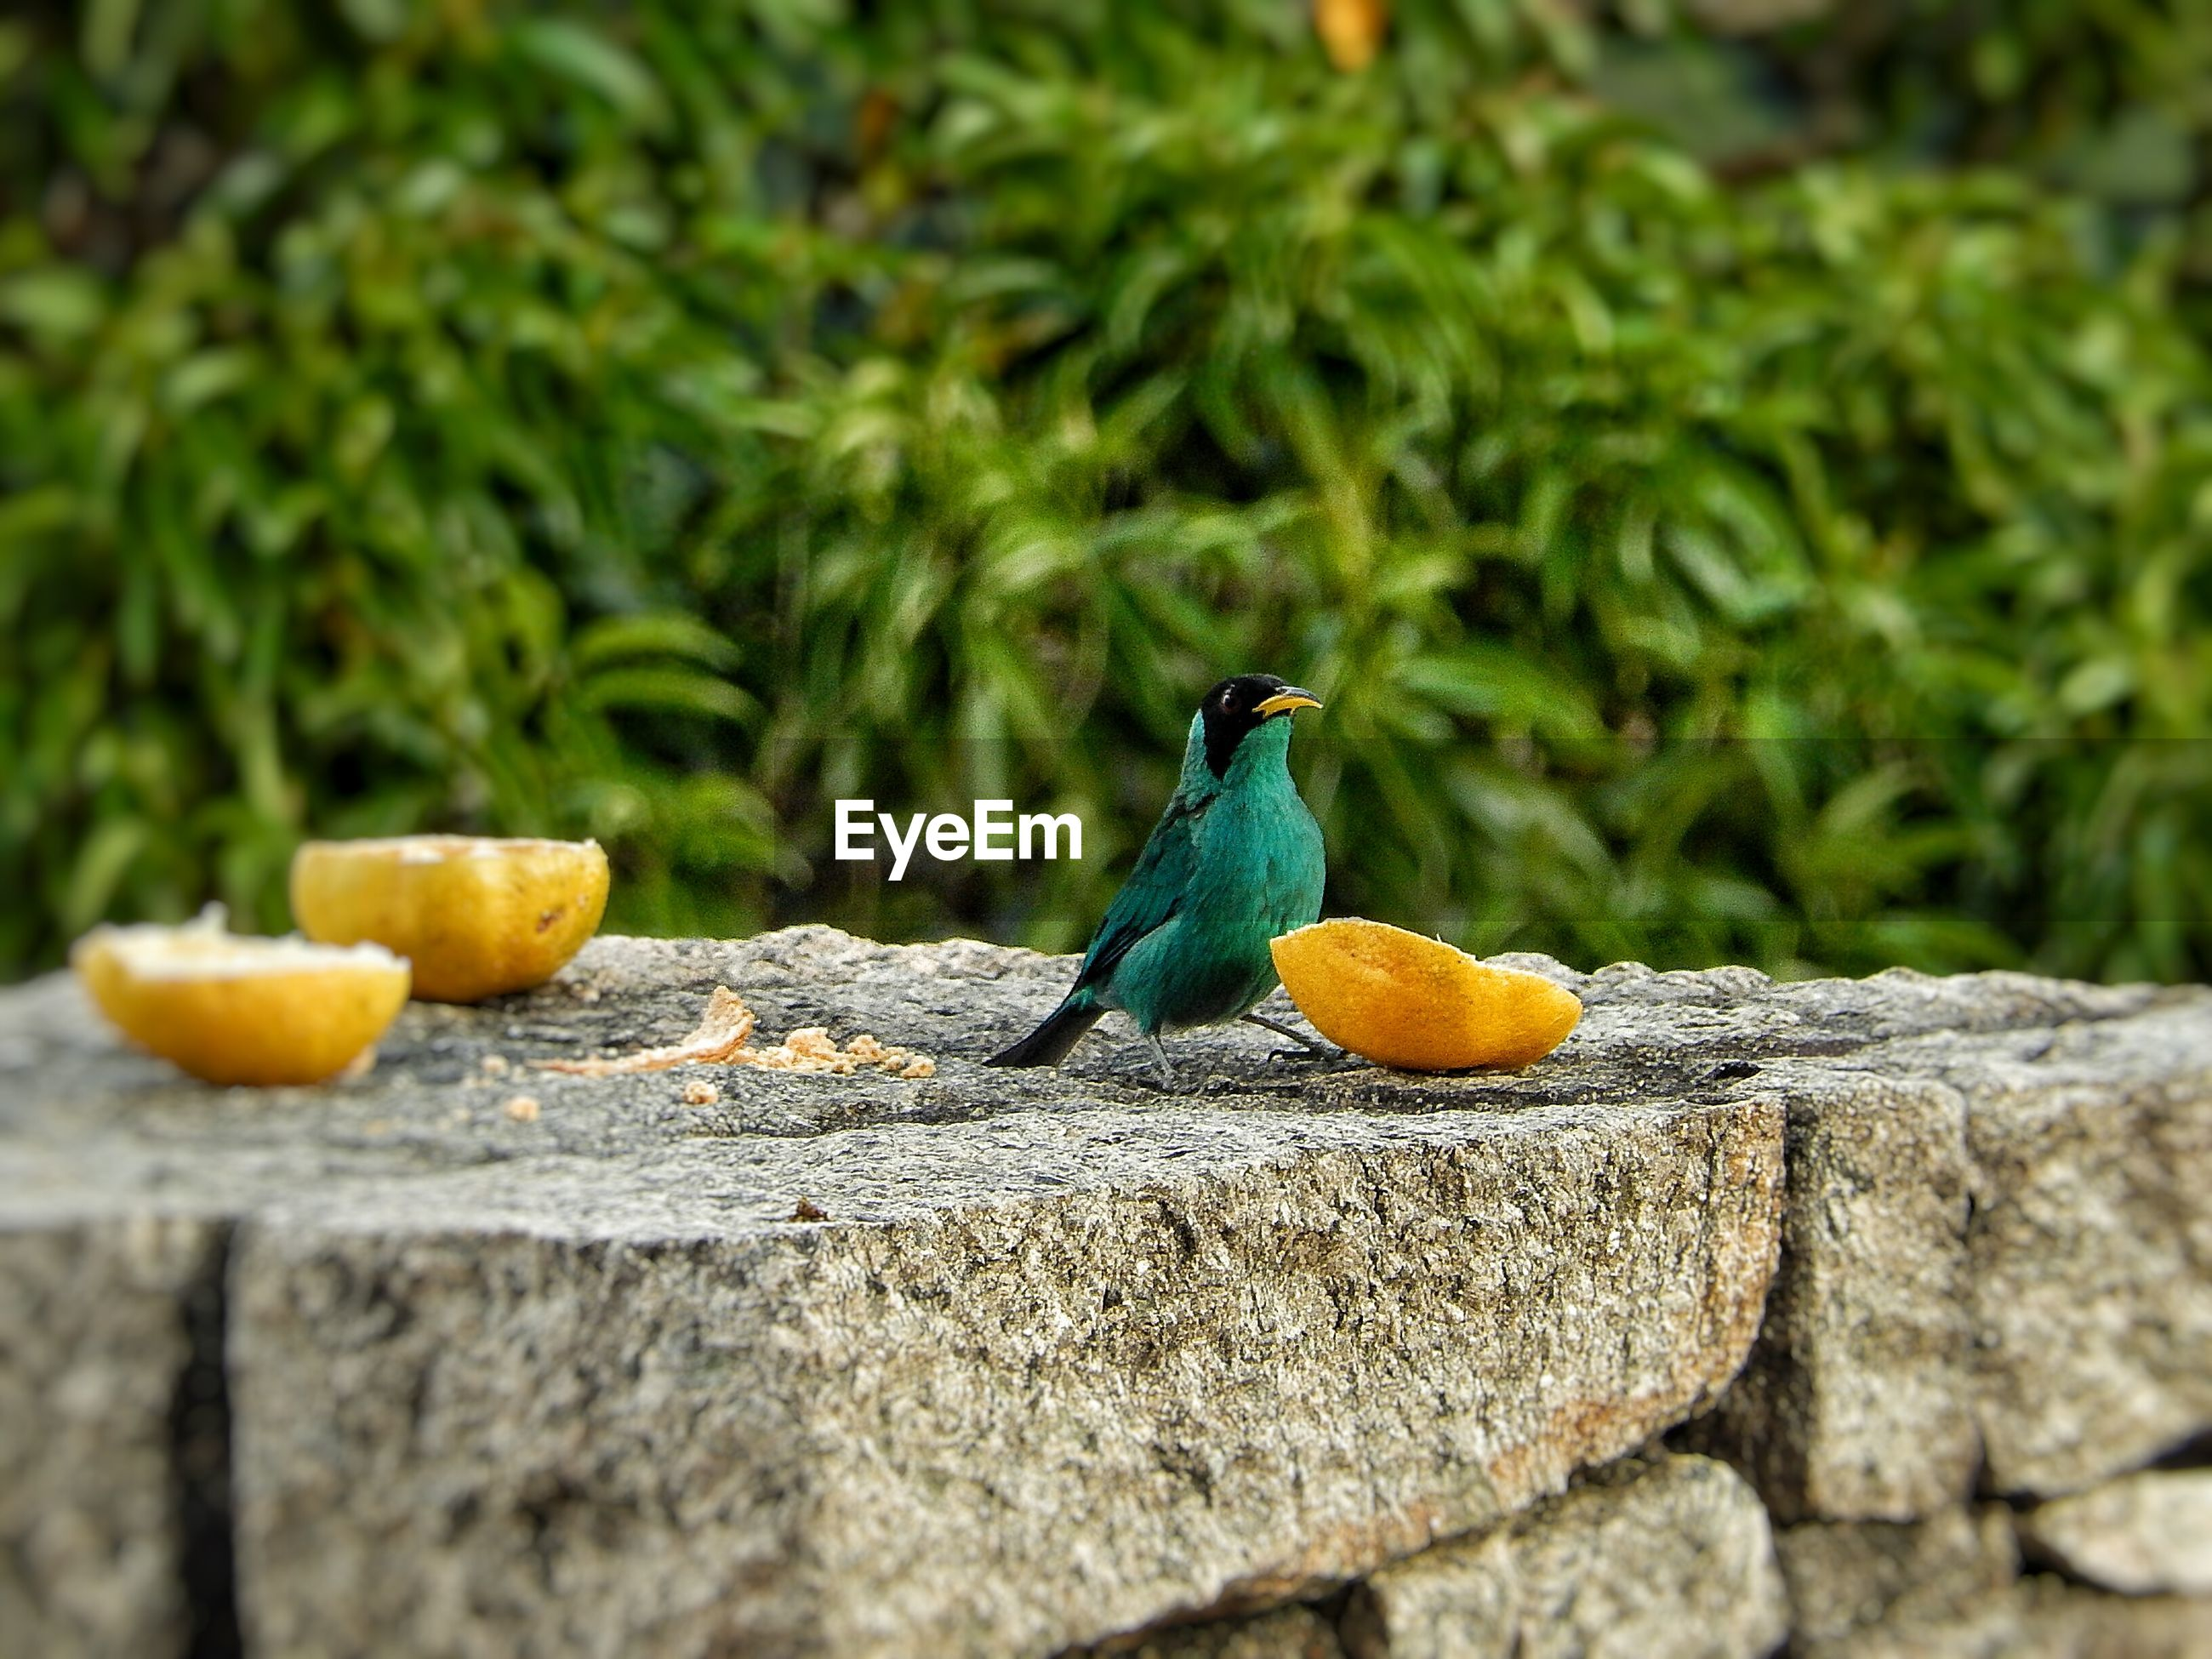 Bird by food on retaining wall